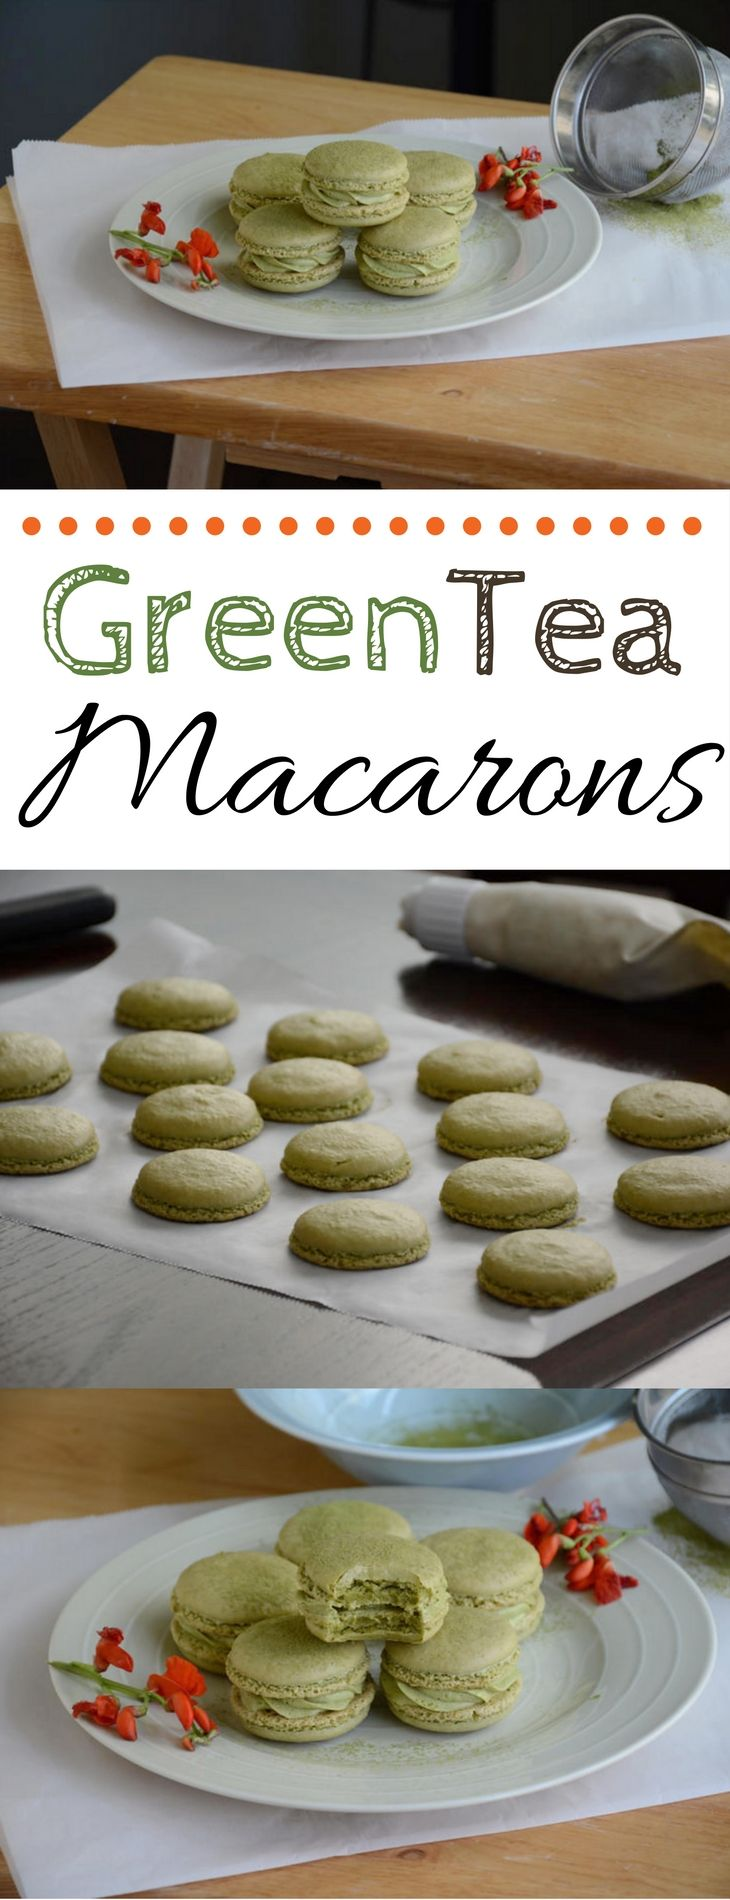 How to make green tea macarons with green tea buttercream frosting!